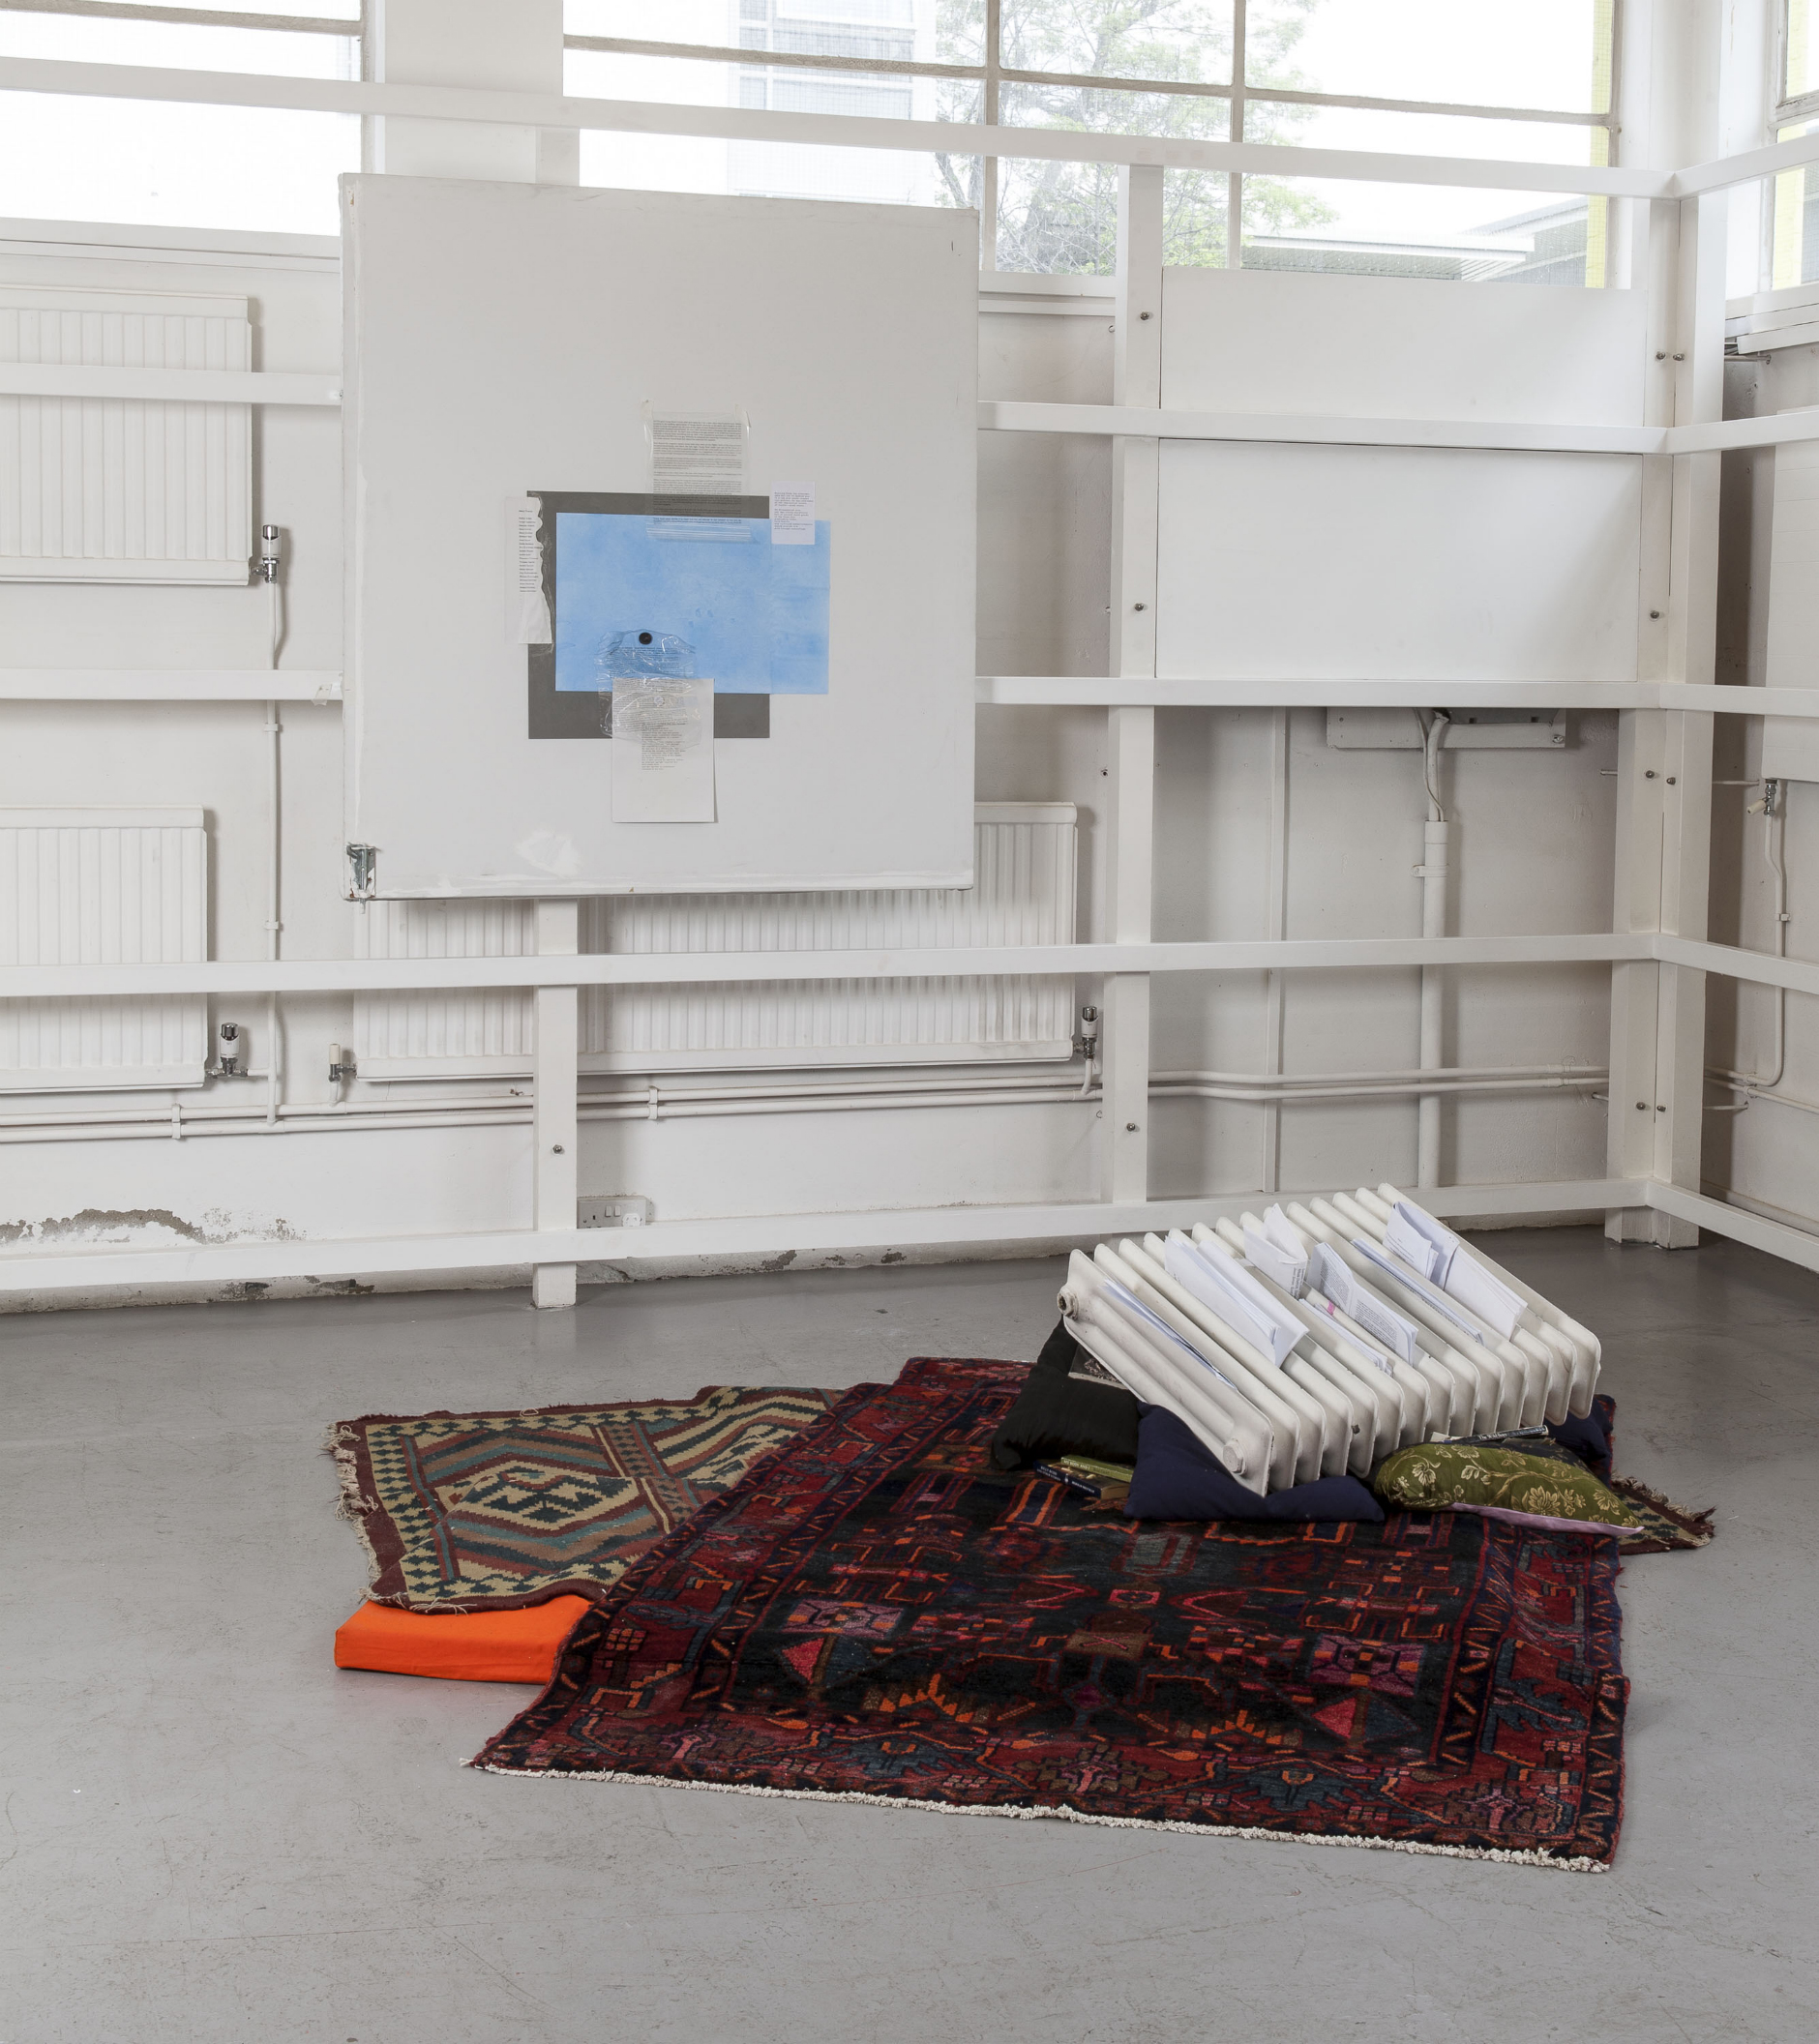 Commissioned by The Showroom for How to work together: a shared project with Chisenhale Gallery and Studio Voltaire. Photo Daniel Brooke. Courtesy the artist and The Showroom, London.